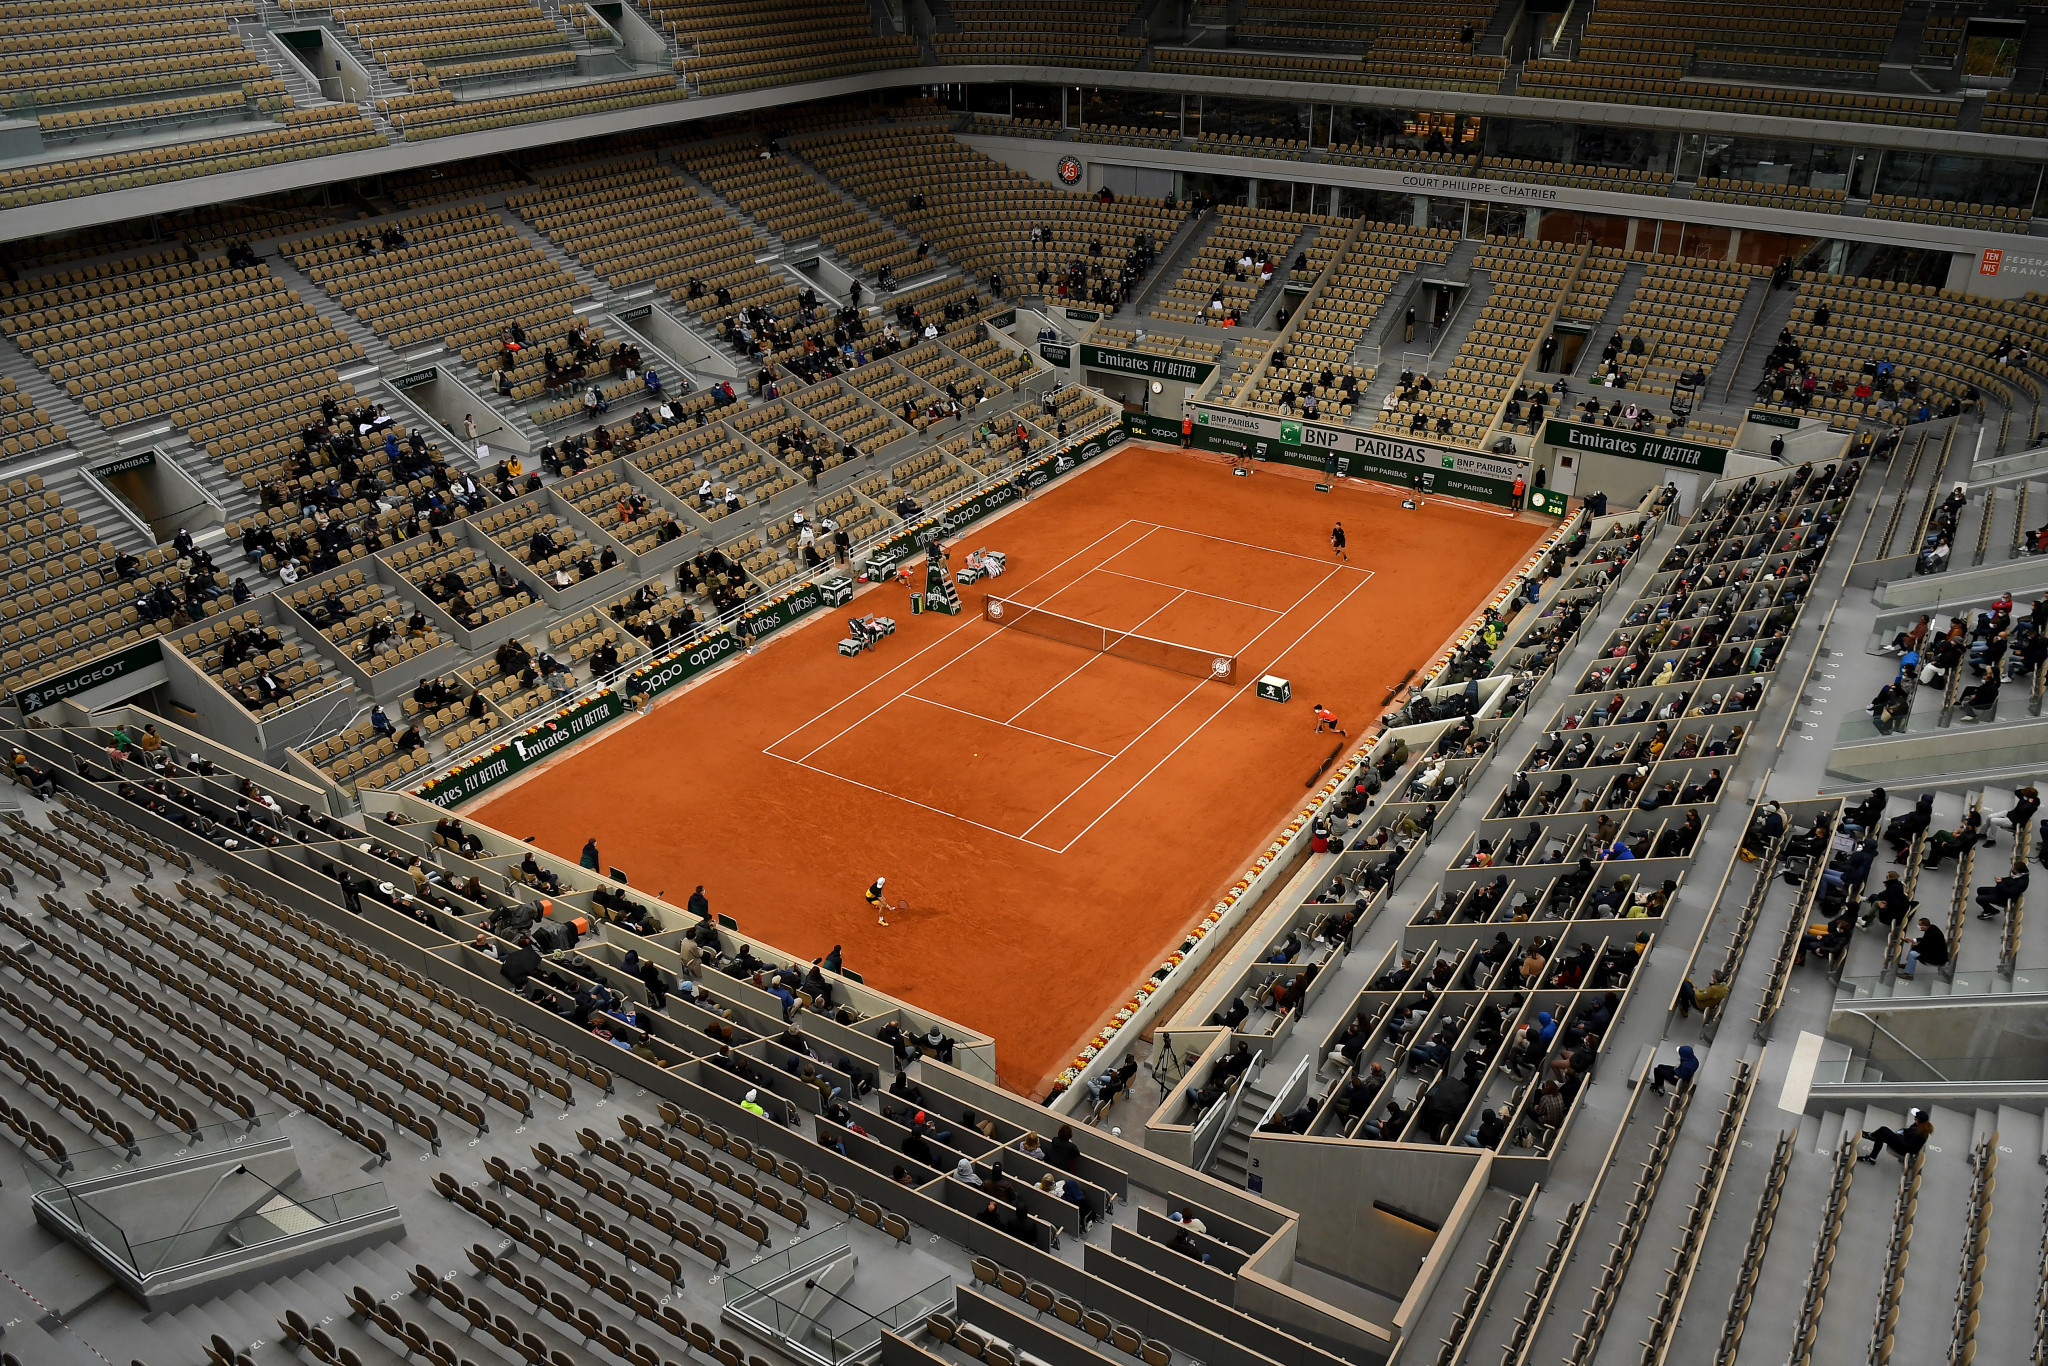 French Open spectator capacity capped at 35 per cent due to COVID-19